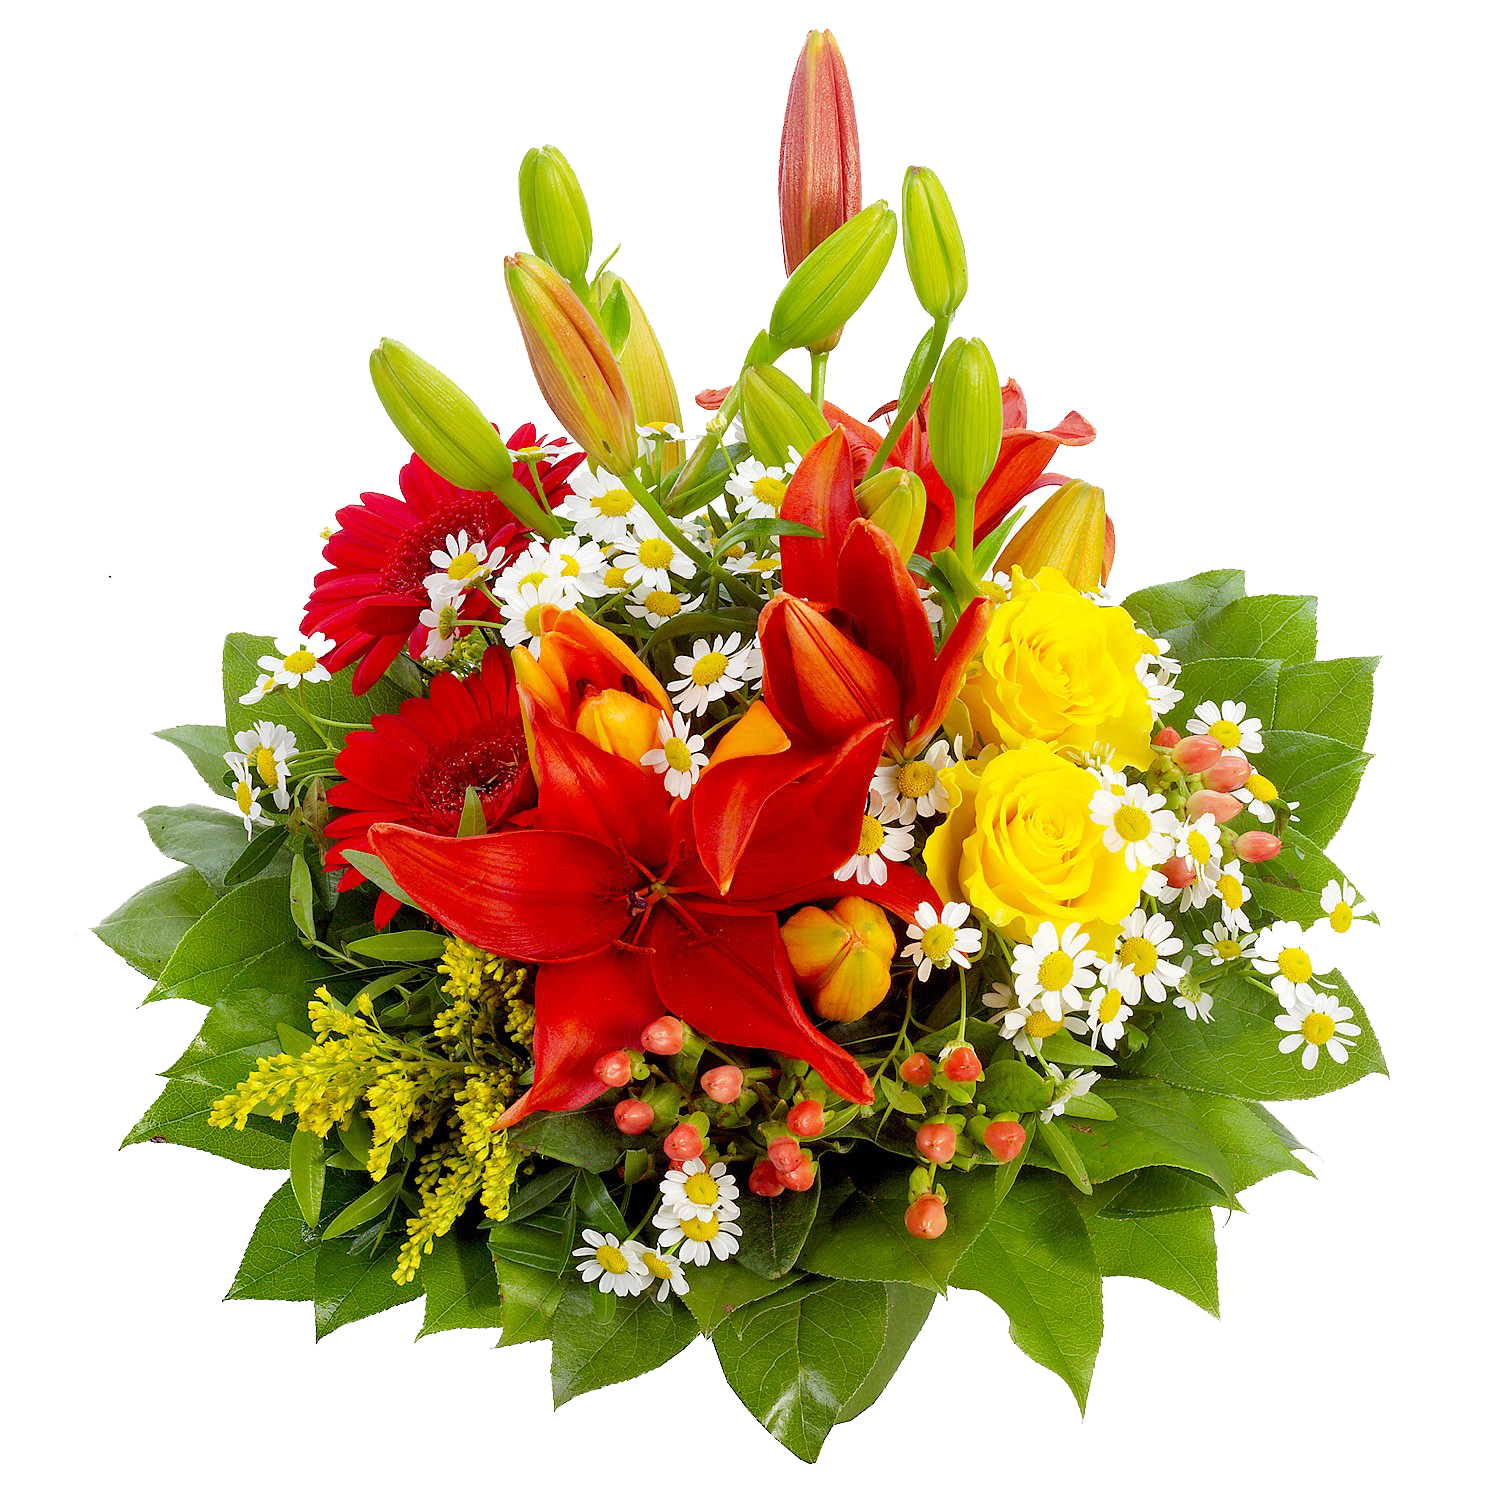 Birthday Flowers Bouquet PNG Image SVG Clip arts